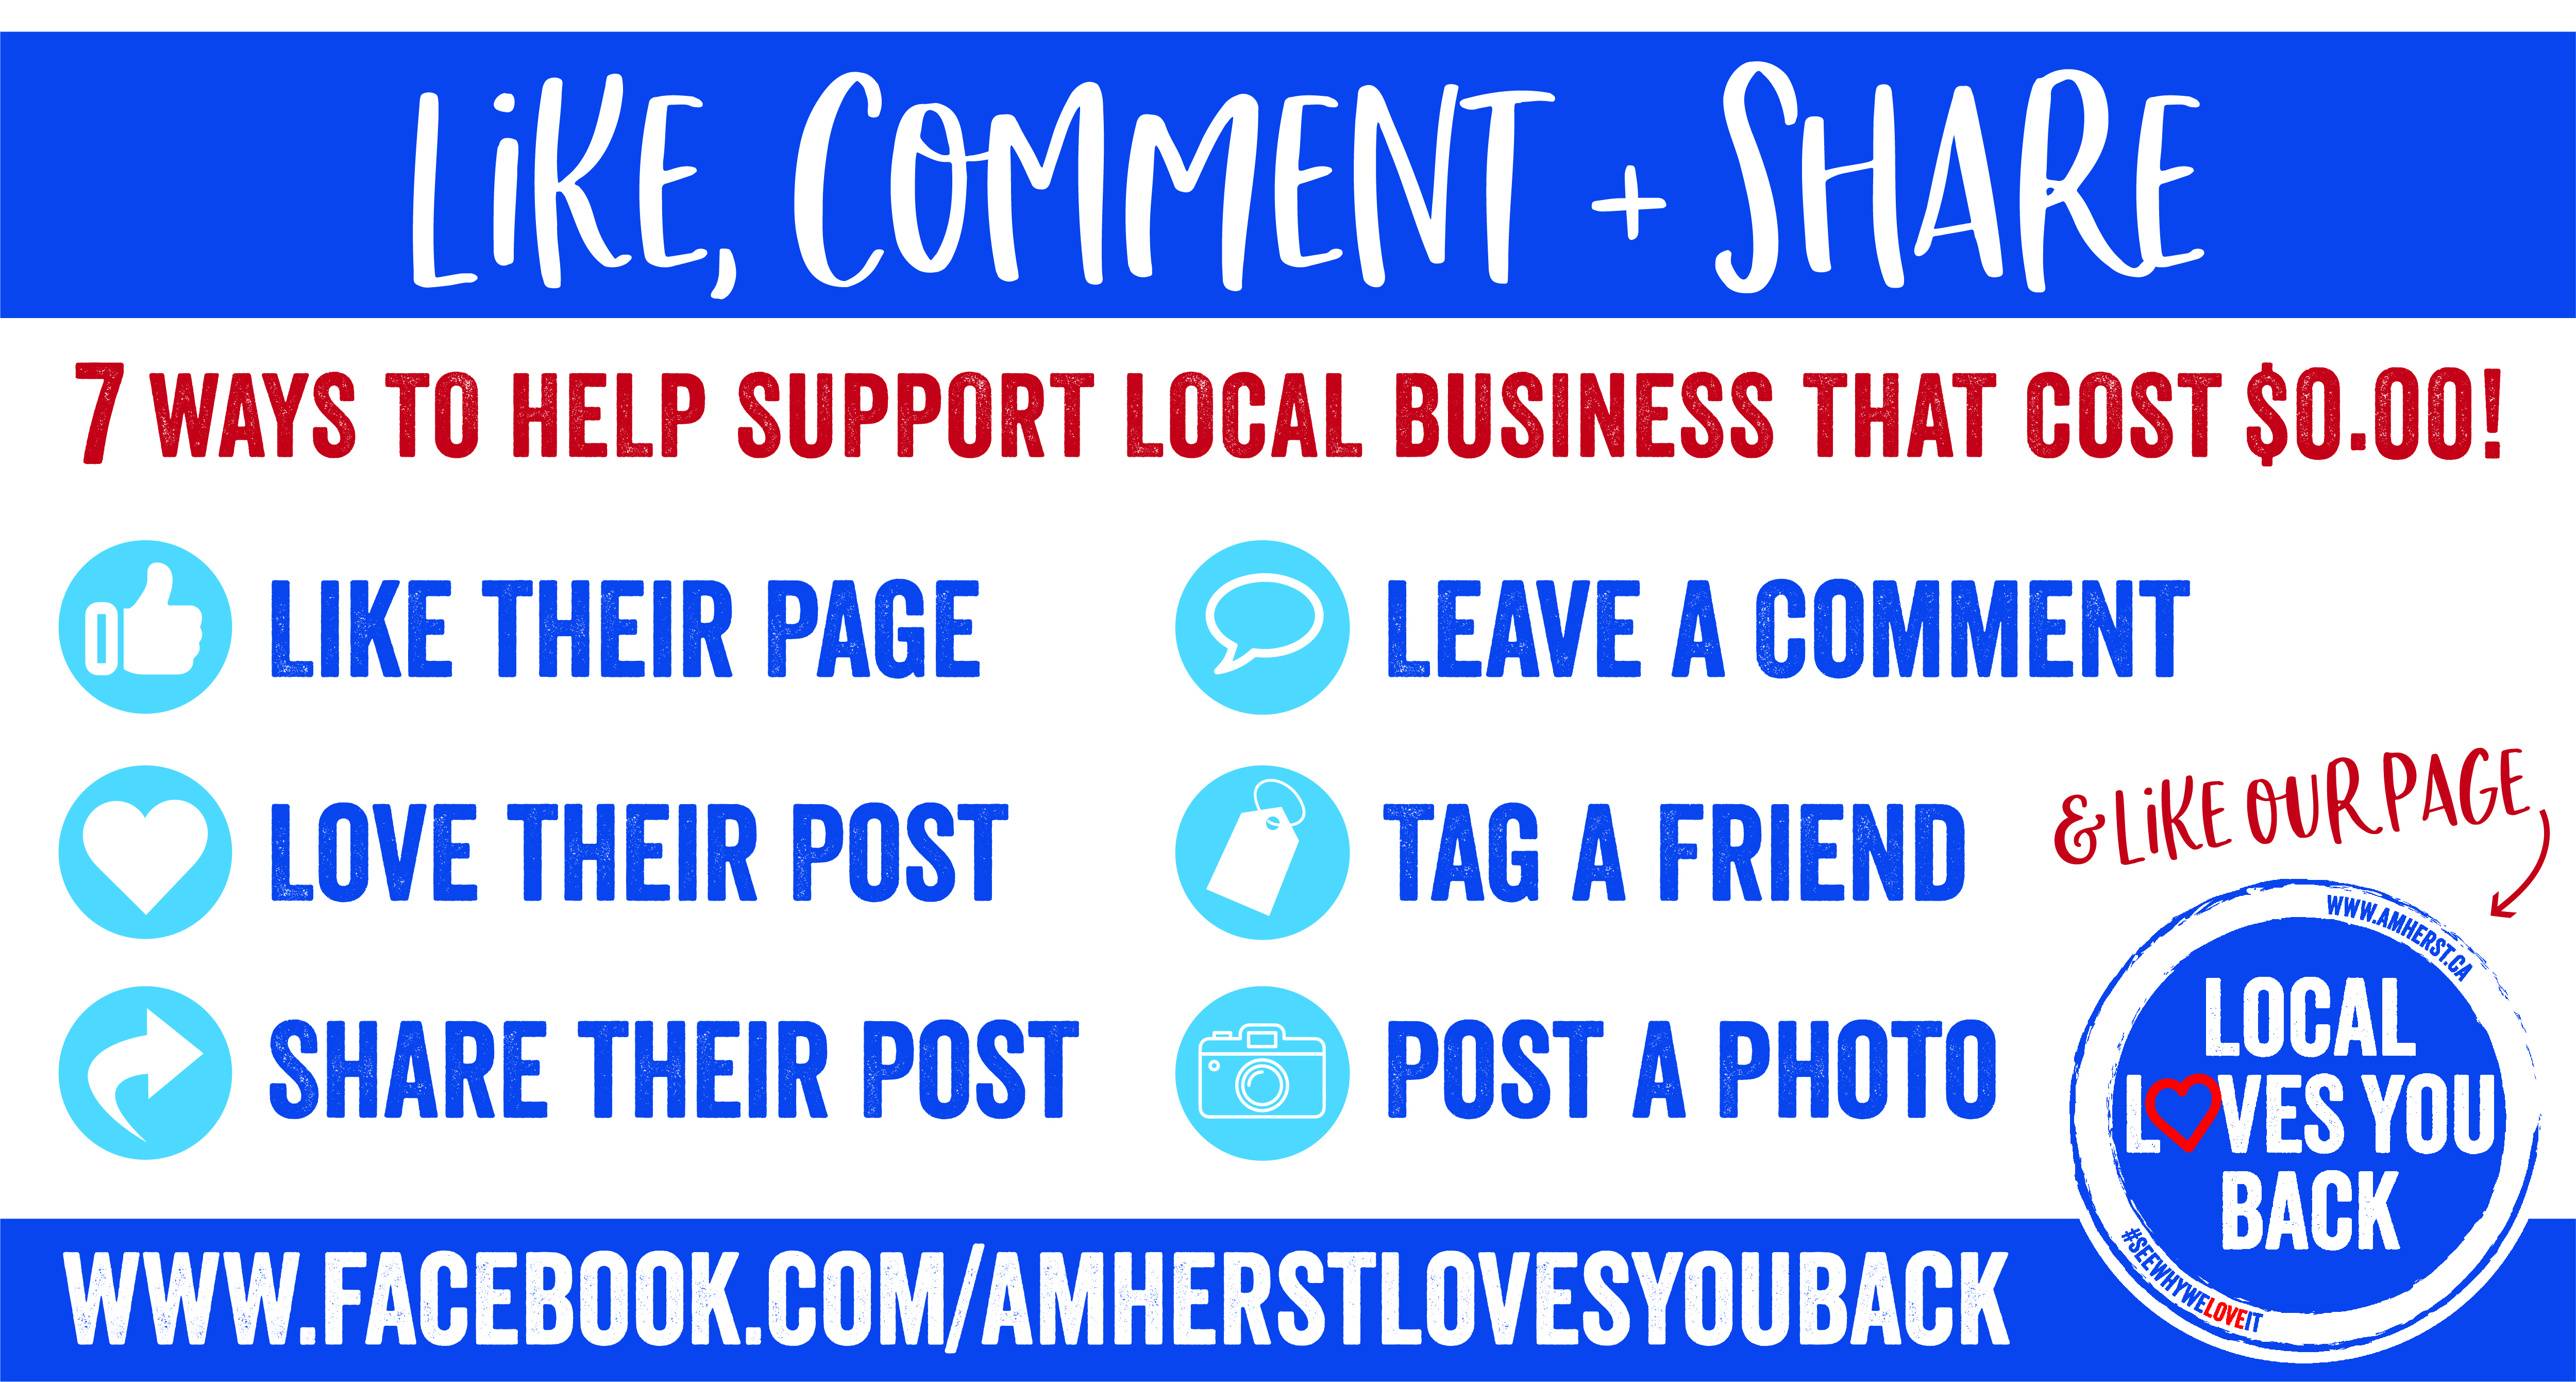 6 ways to support local